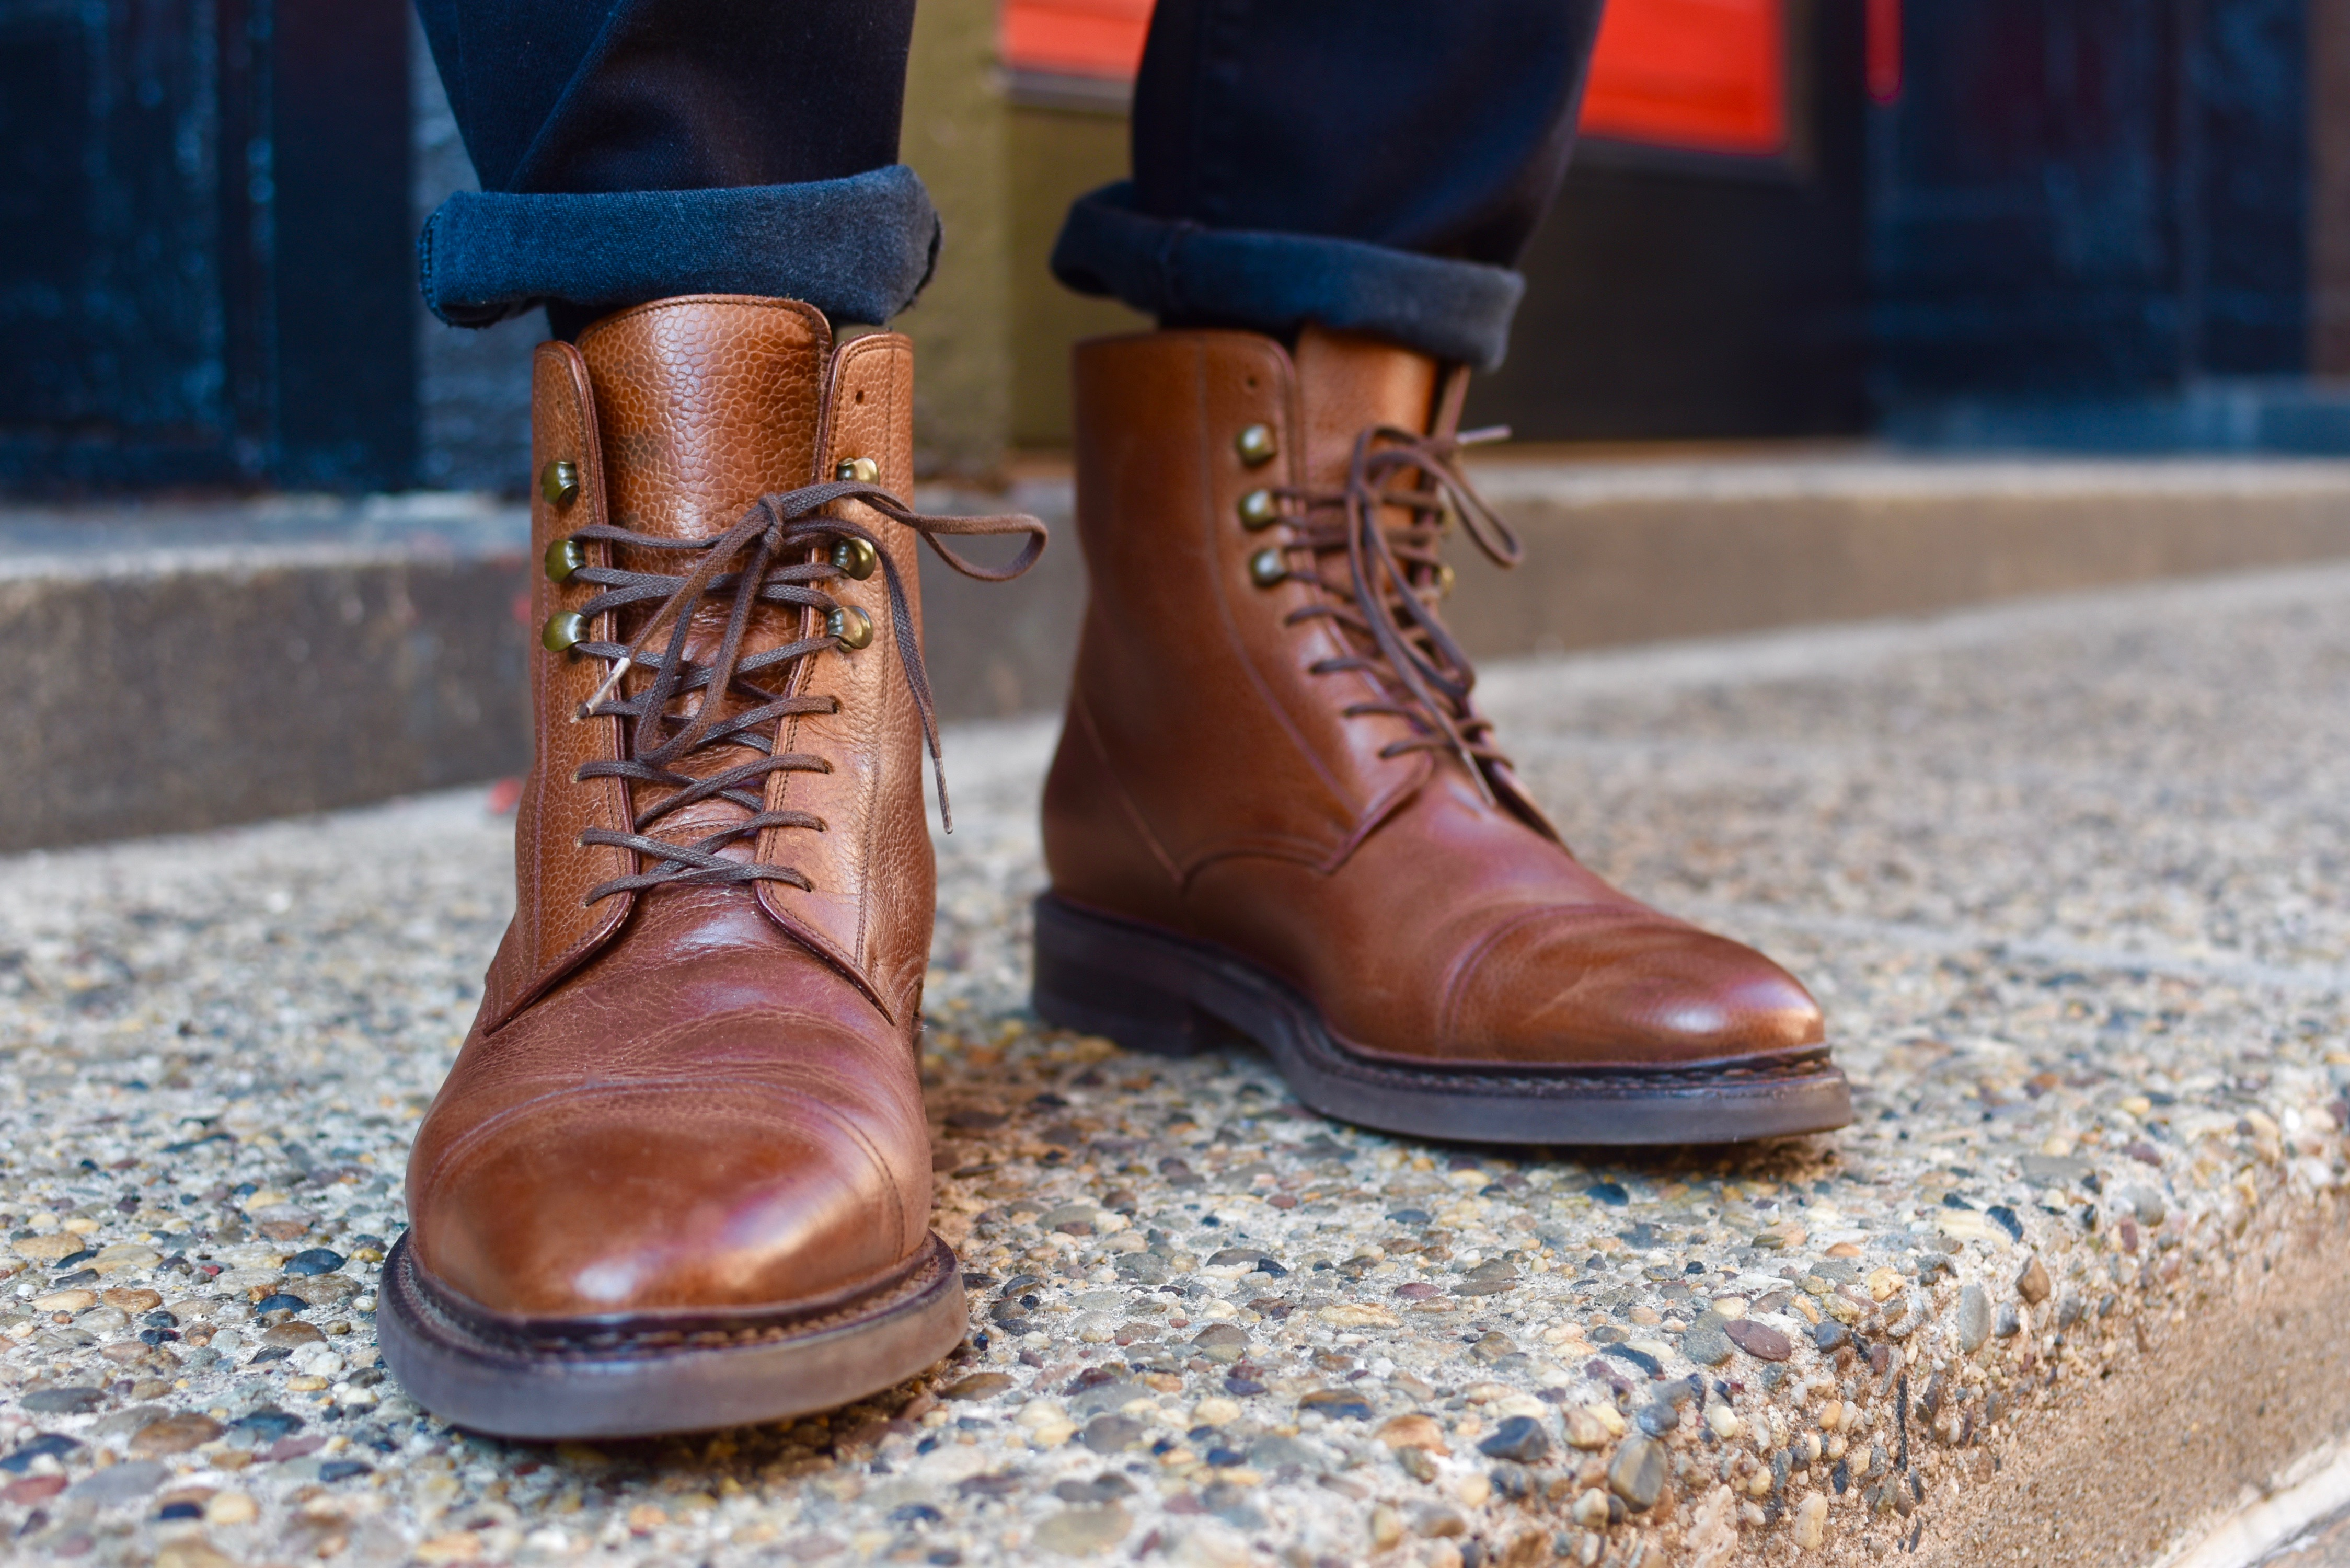 Men's Style Pro wearing cobbler union boots & axel arigato sneakers in boots vs sneakers